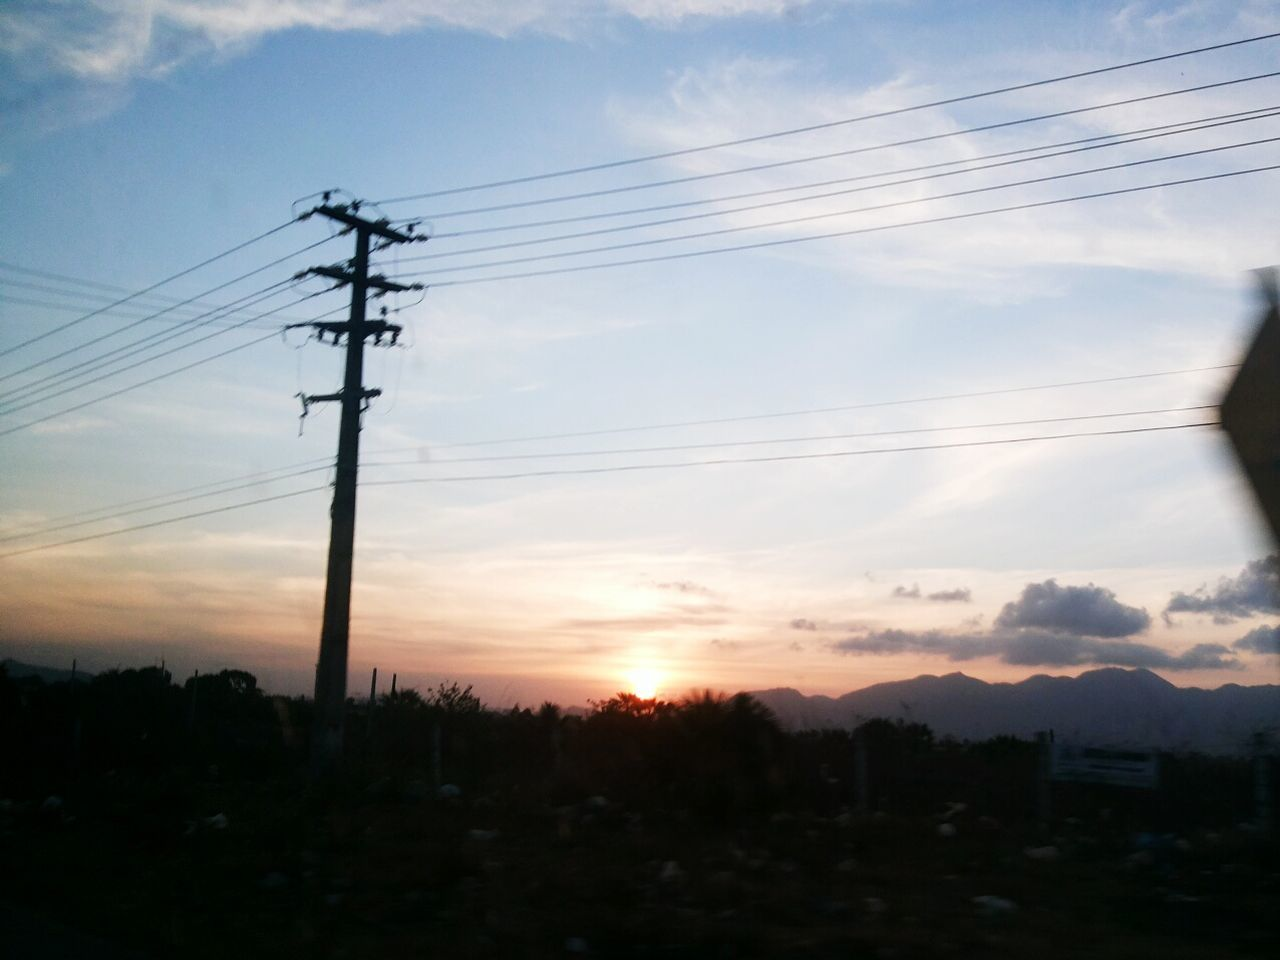 cable, connection, electricity, power supply, power line, sunset, electricity pylon, sky, silhouette, technology, cloud - sky, fuel and power generation, no people, low angle view, nature, outdoors, scenics, landscape, beauty in nature, tree, day